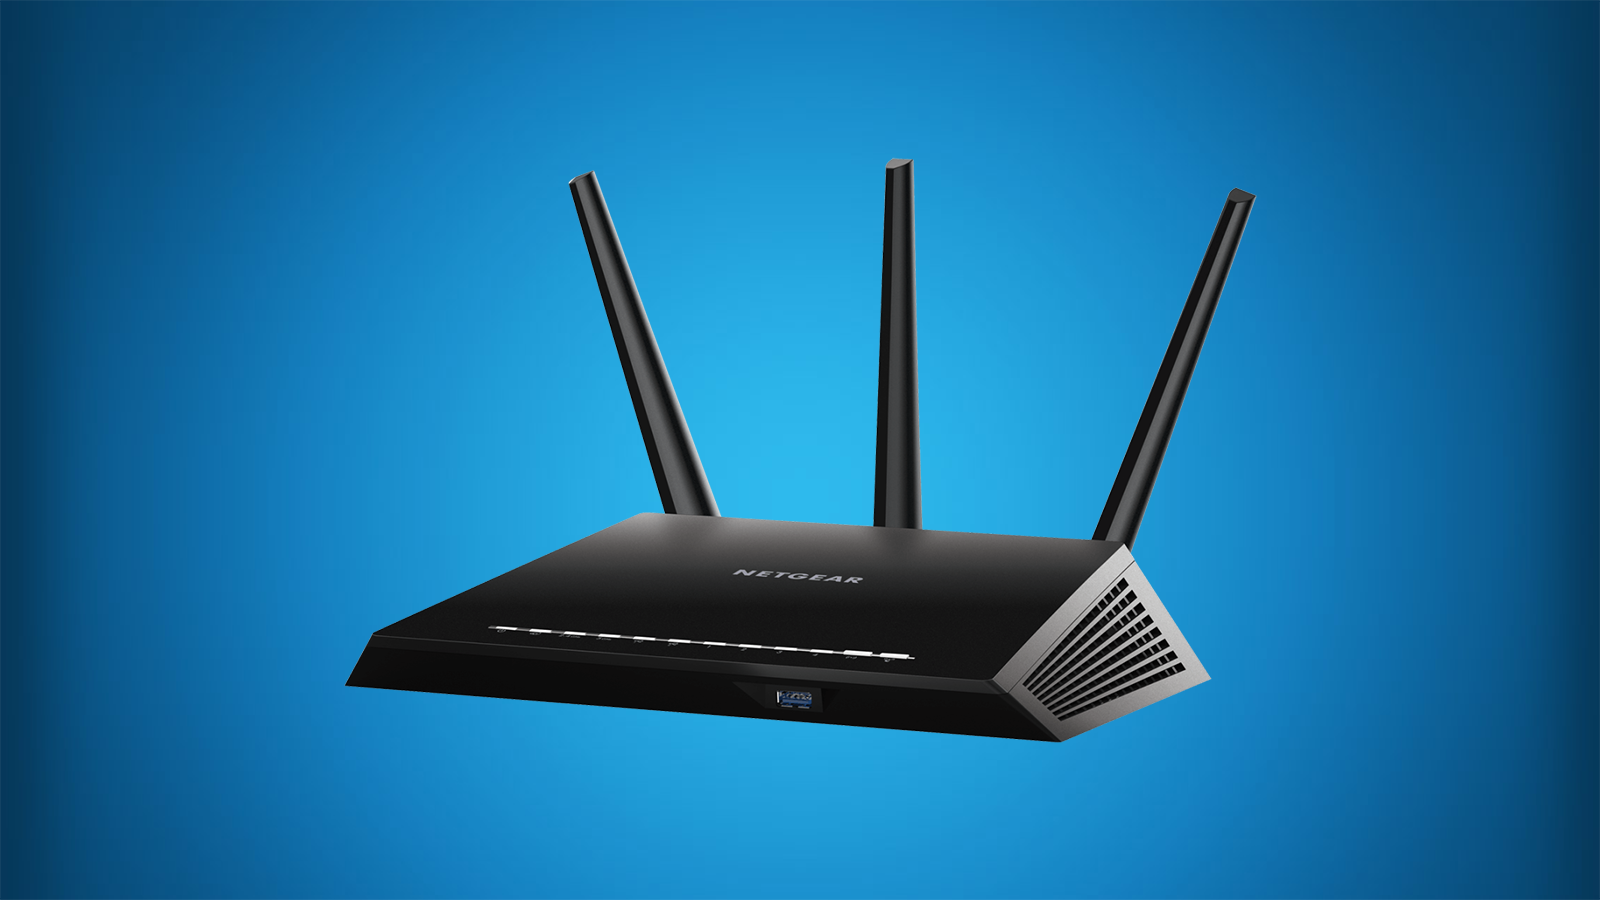 7 Best VPN Routers in 2019 - Top-Rated VPN Routers To Buy Today!